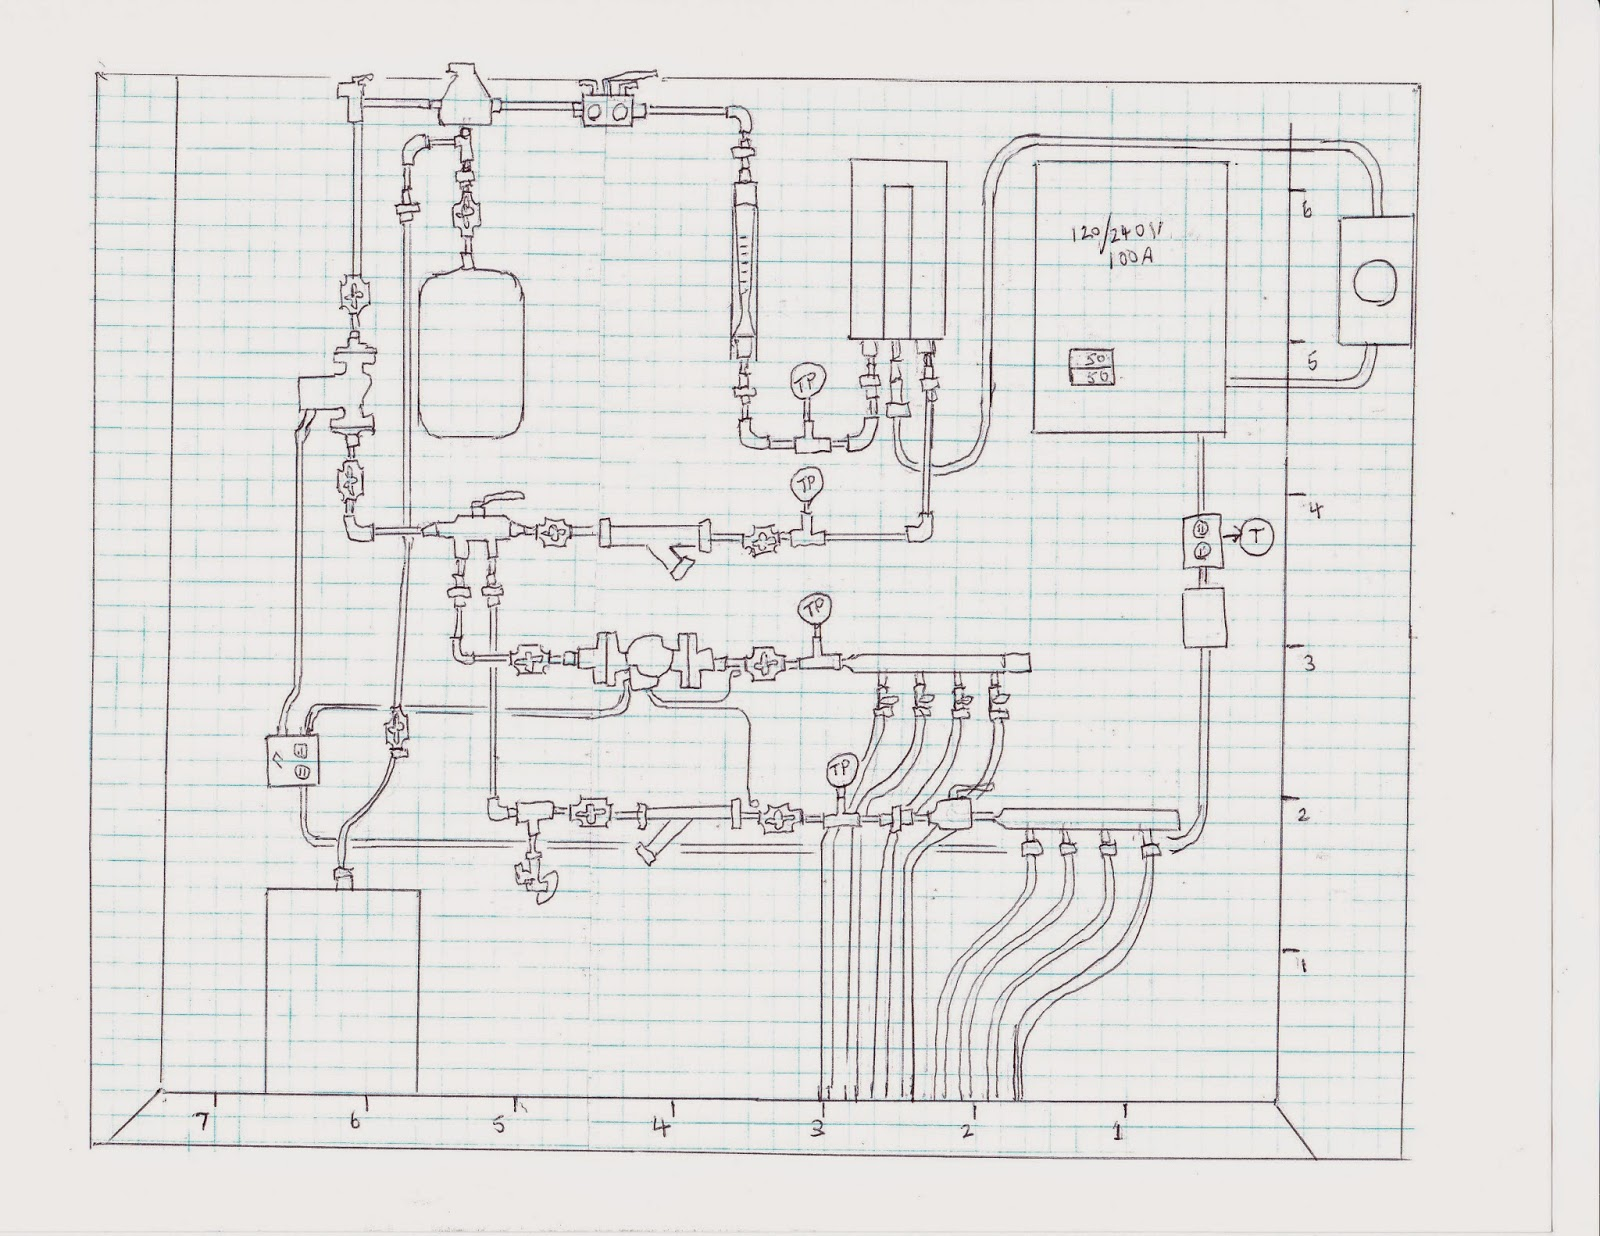 Hydronic System For Attached Garage Sketch Component